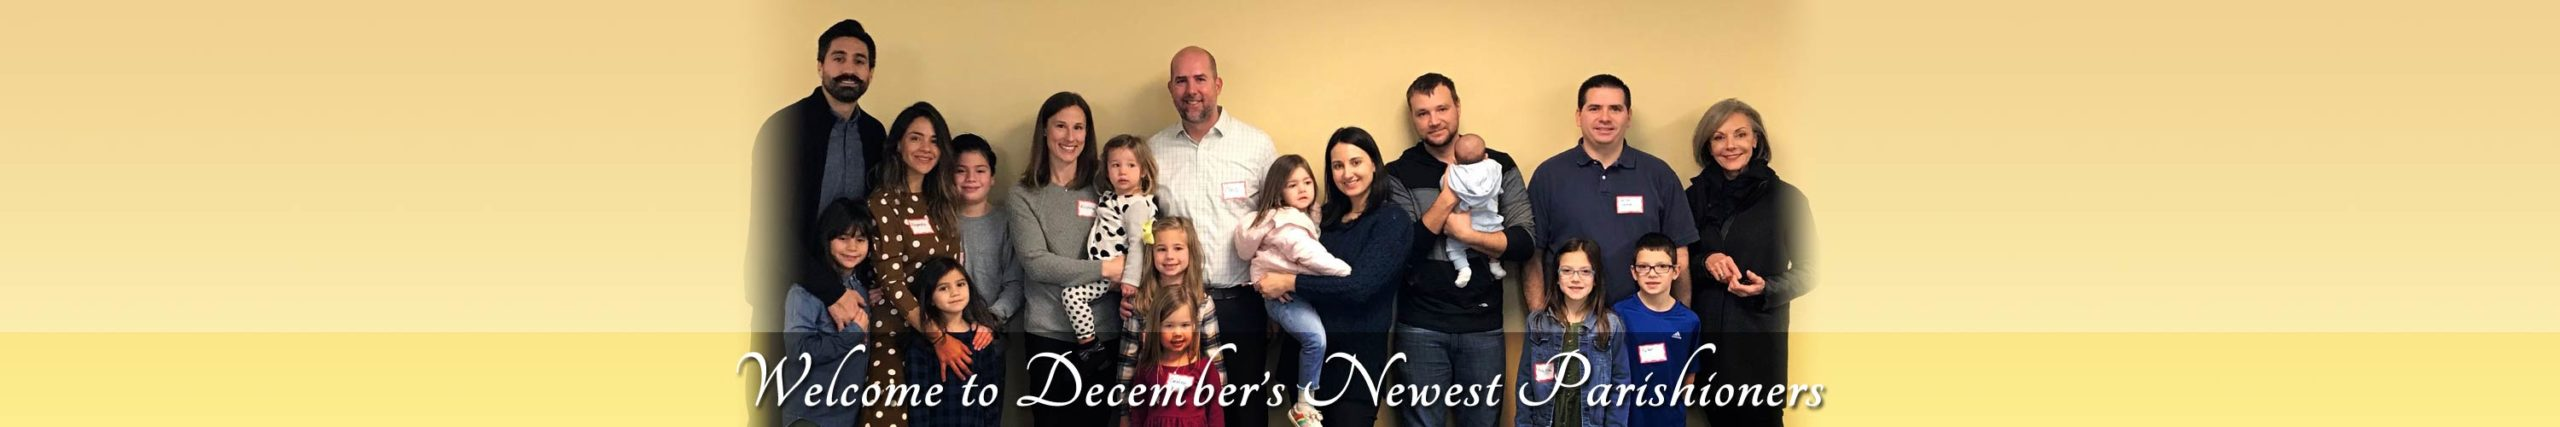 Welcome-New-Parishioners-december-2019